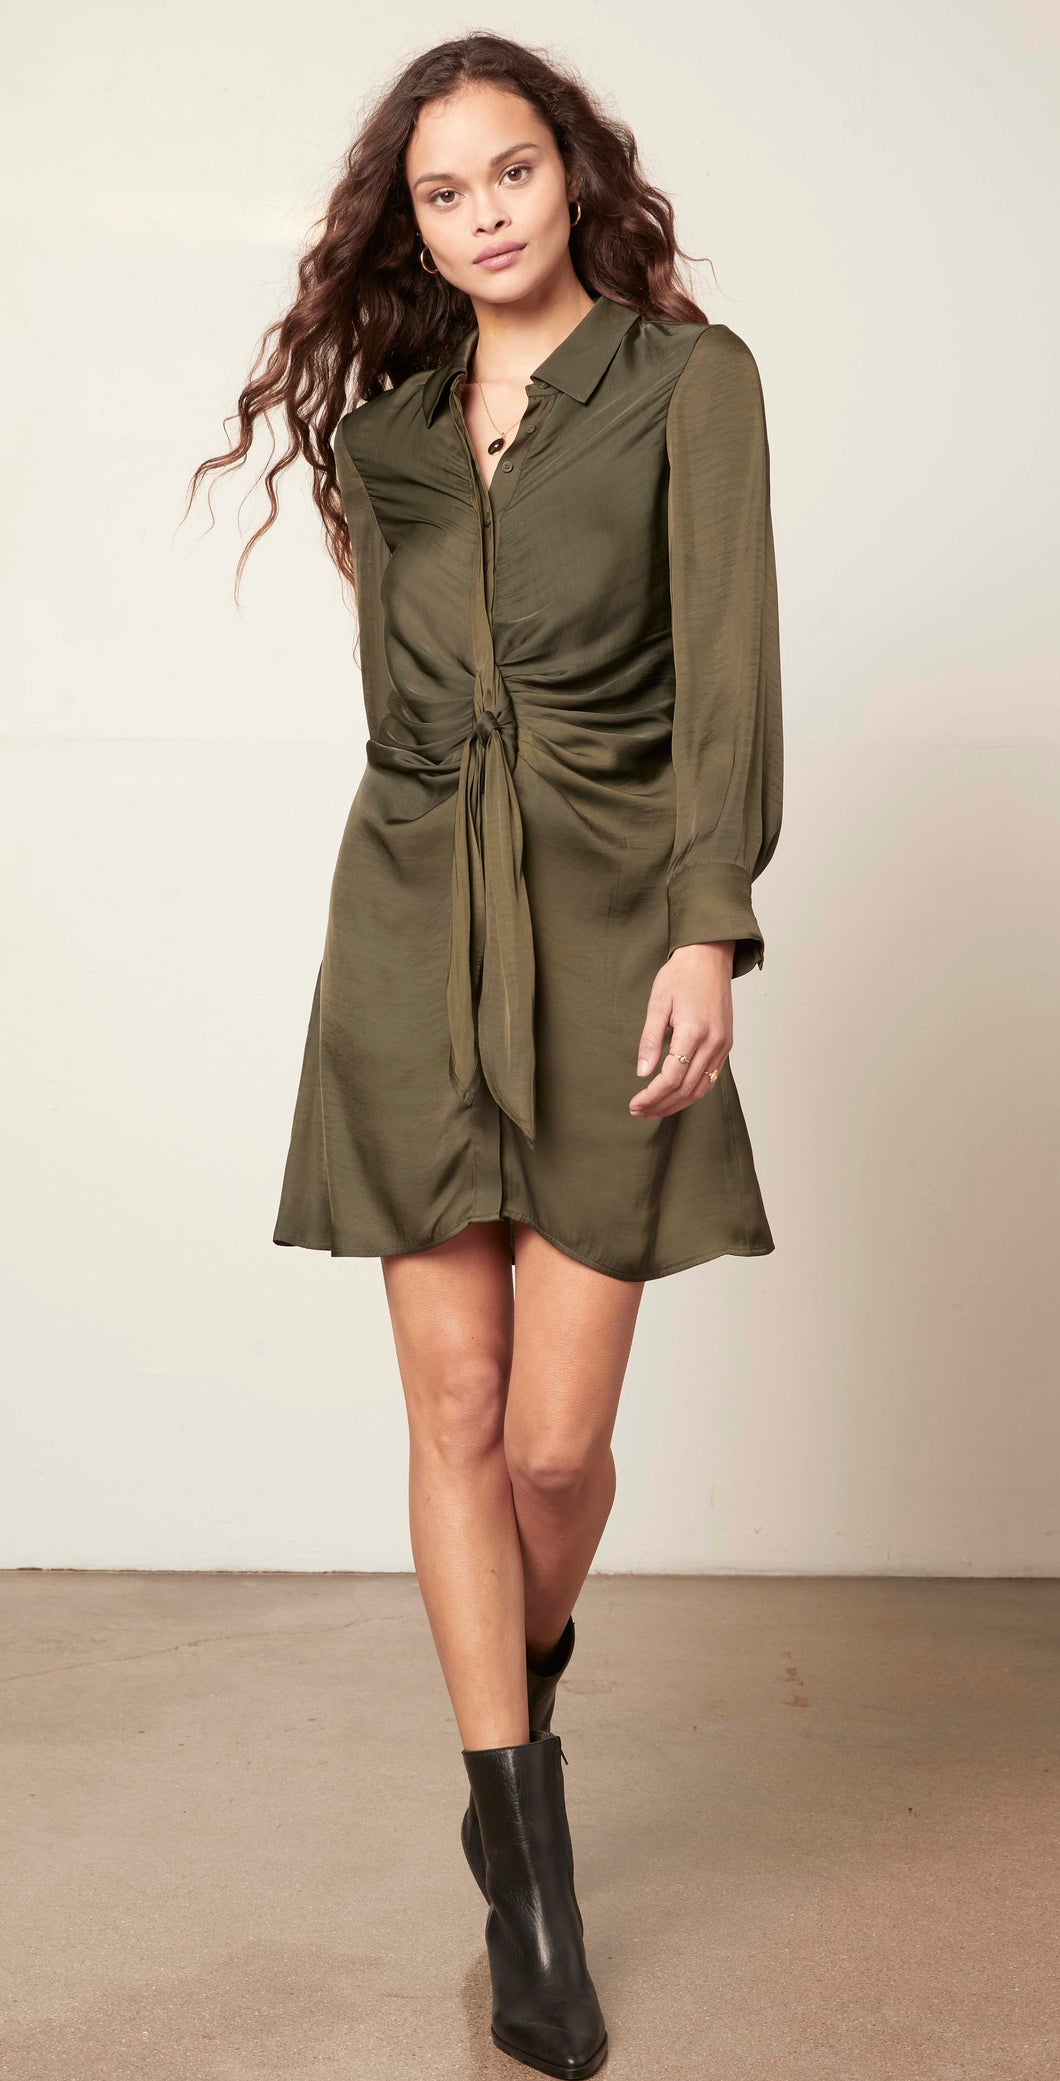 Olive Tie Curious Dress